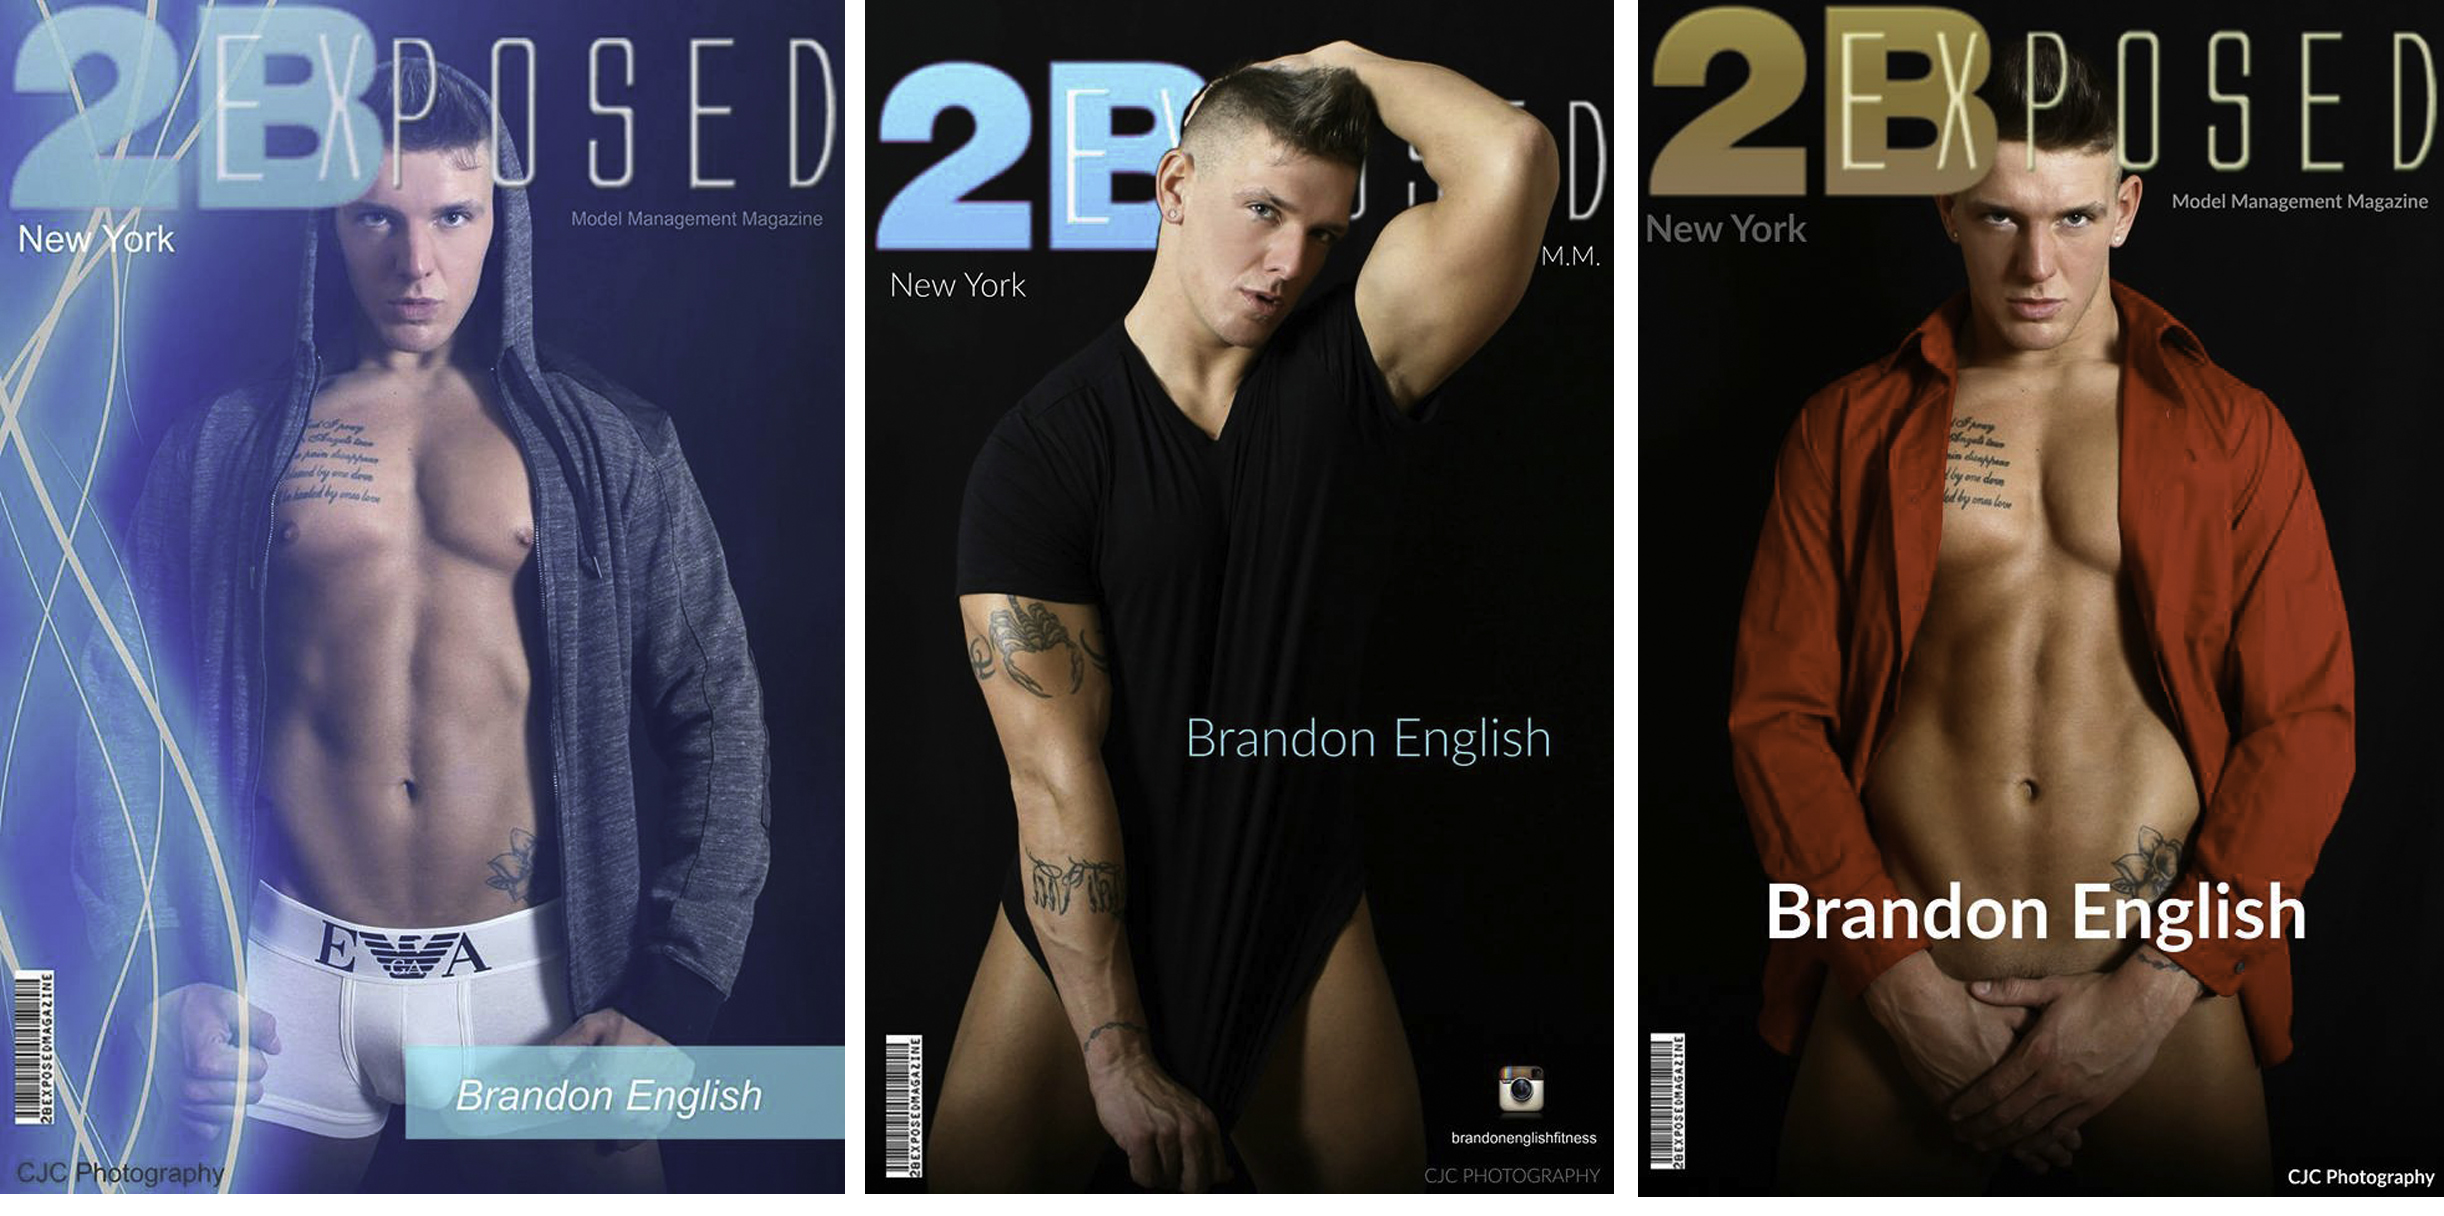 2BExposed Magazine, New York, Brandon English, CJC Photography, Boston, book cover photographer